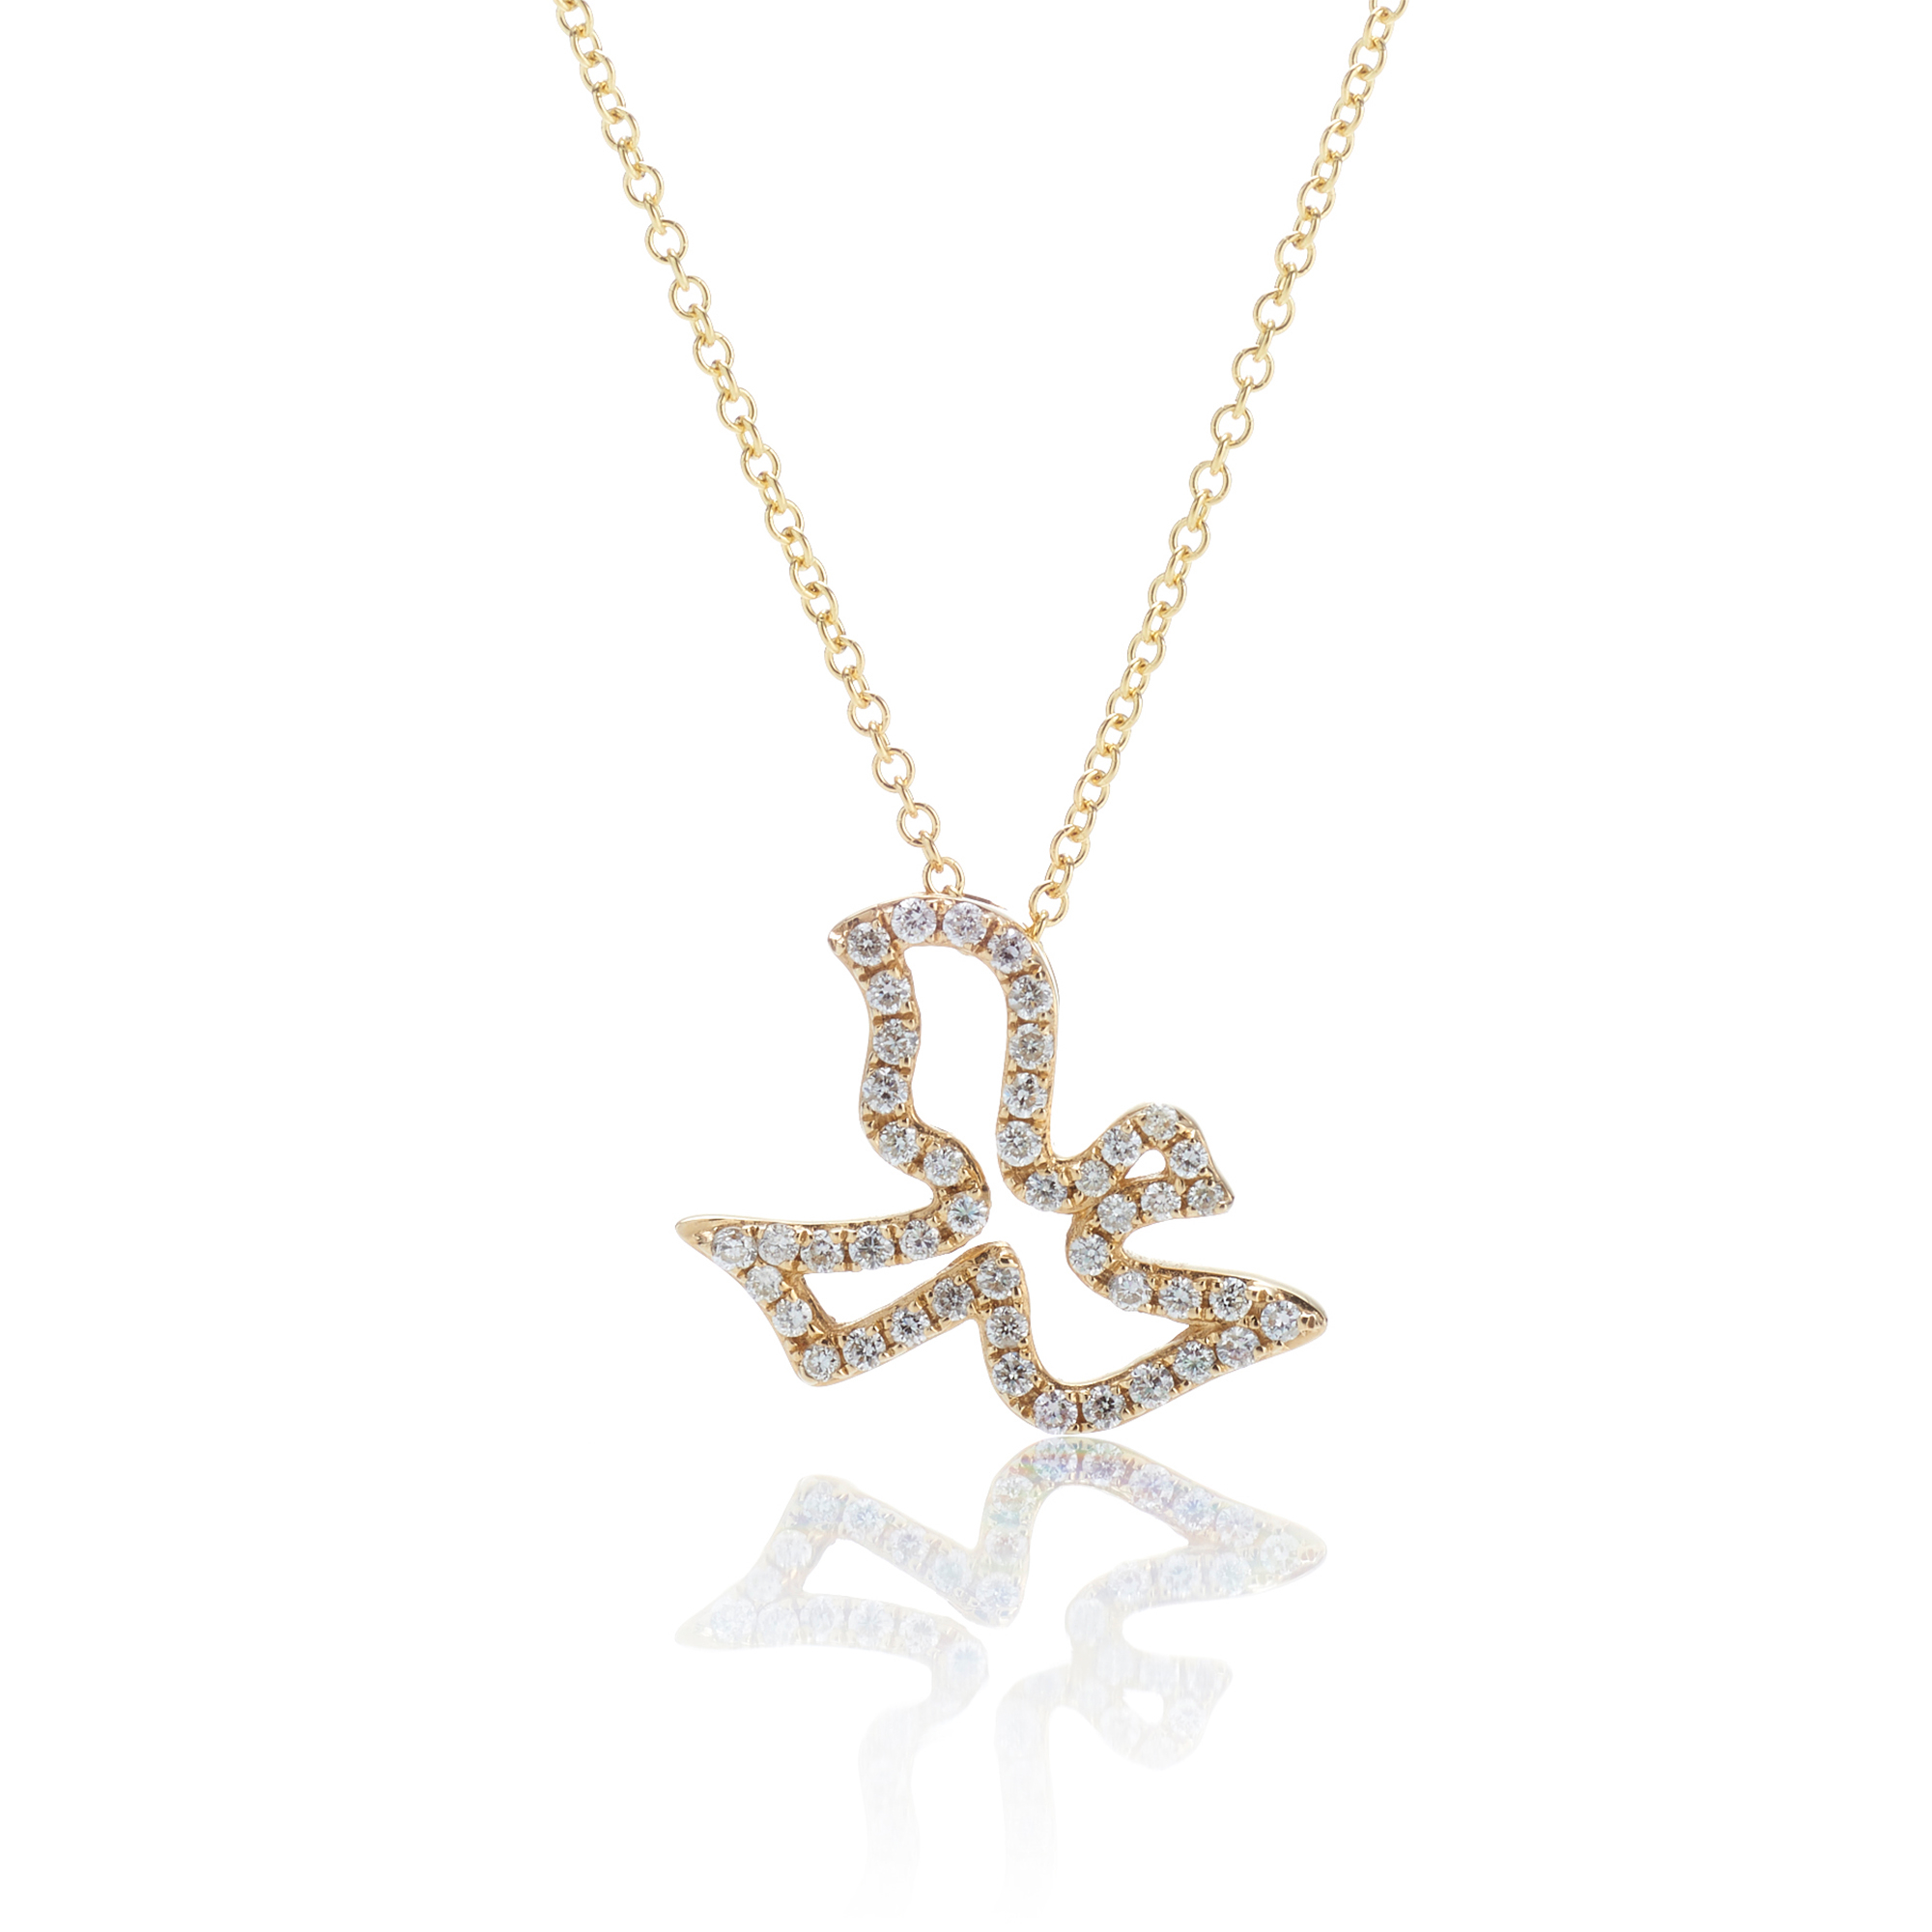 Gump's Diamond Dove Silhouette Pendant Necklace